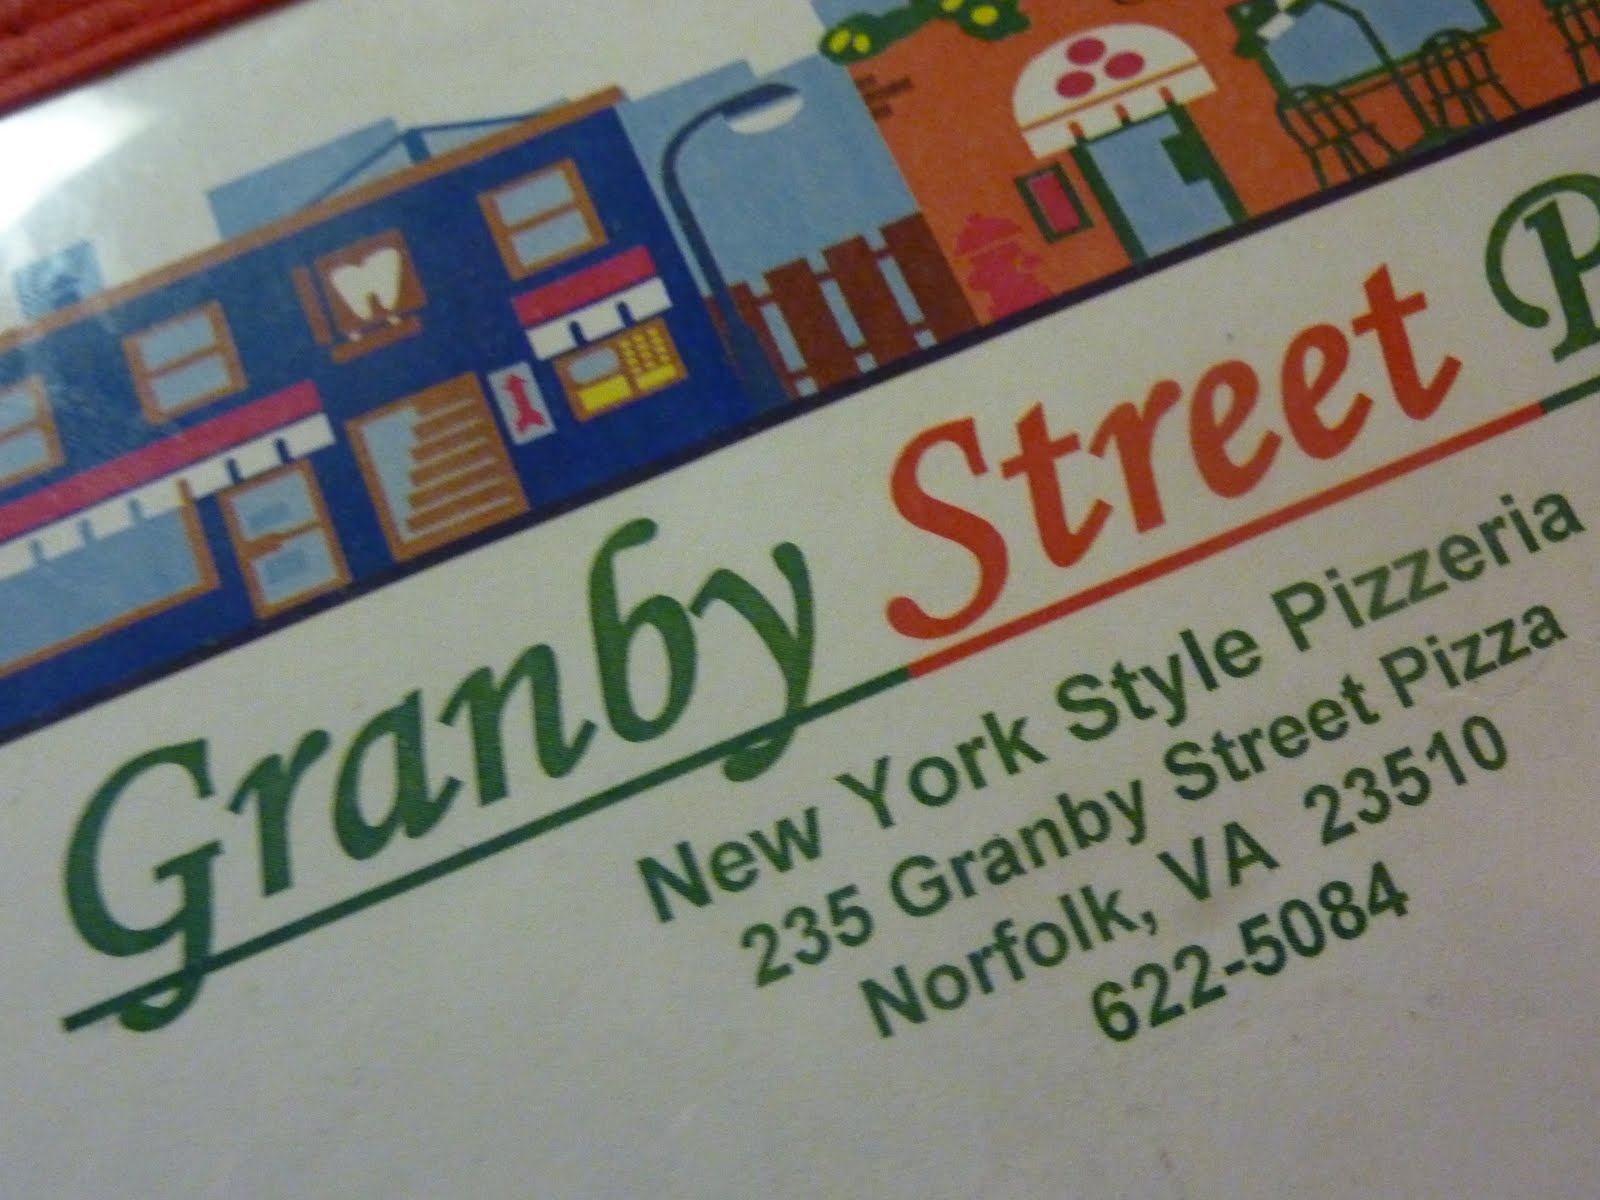 Granby pizza coupons